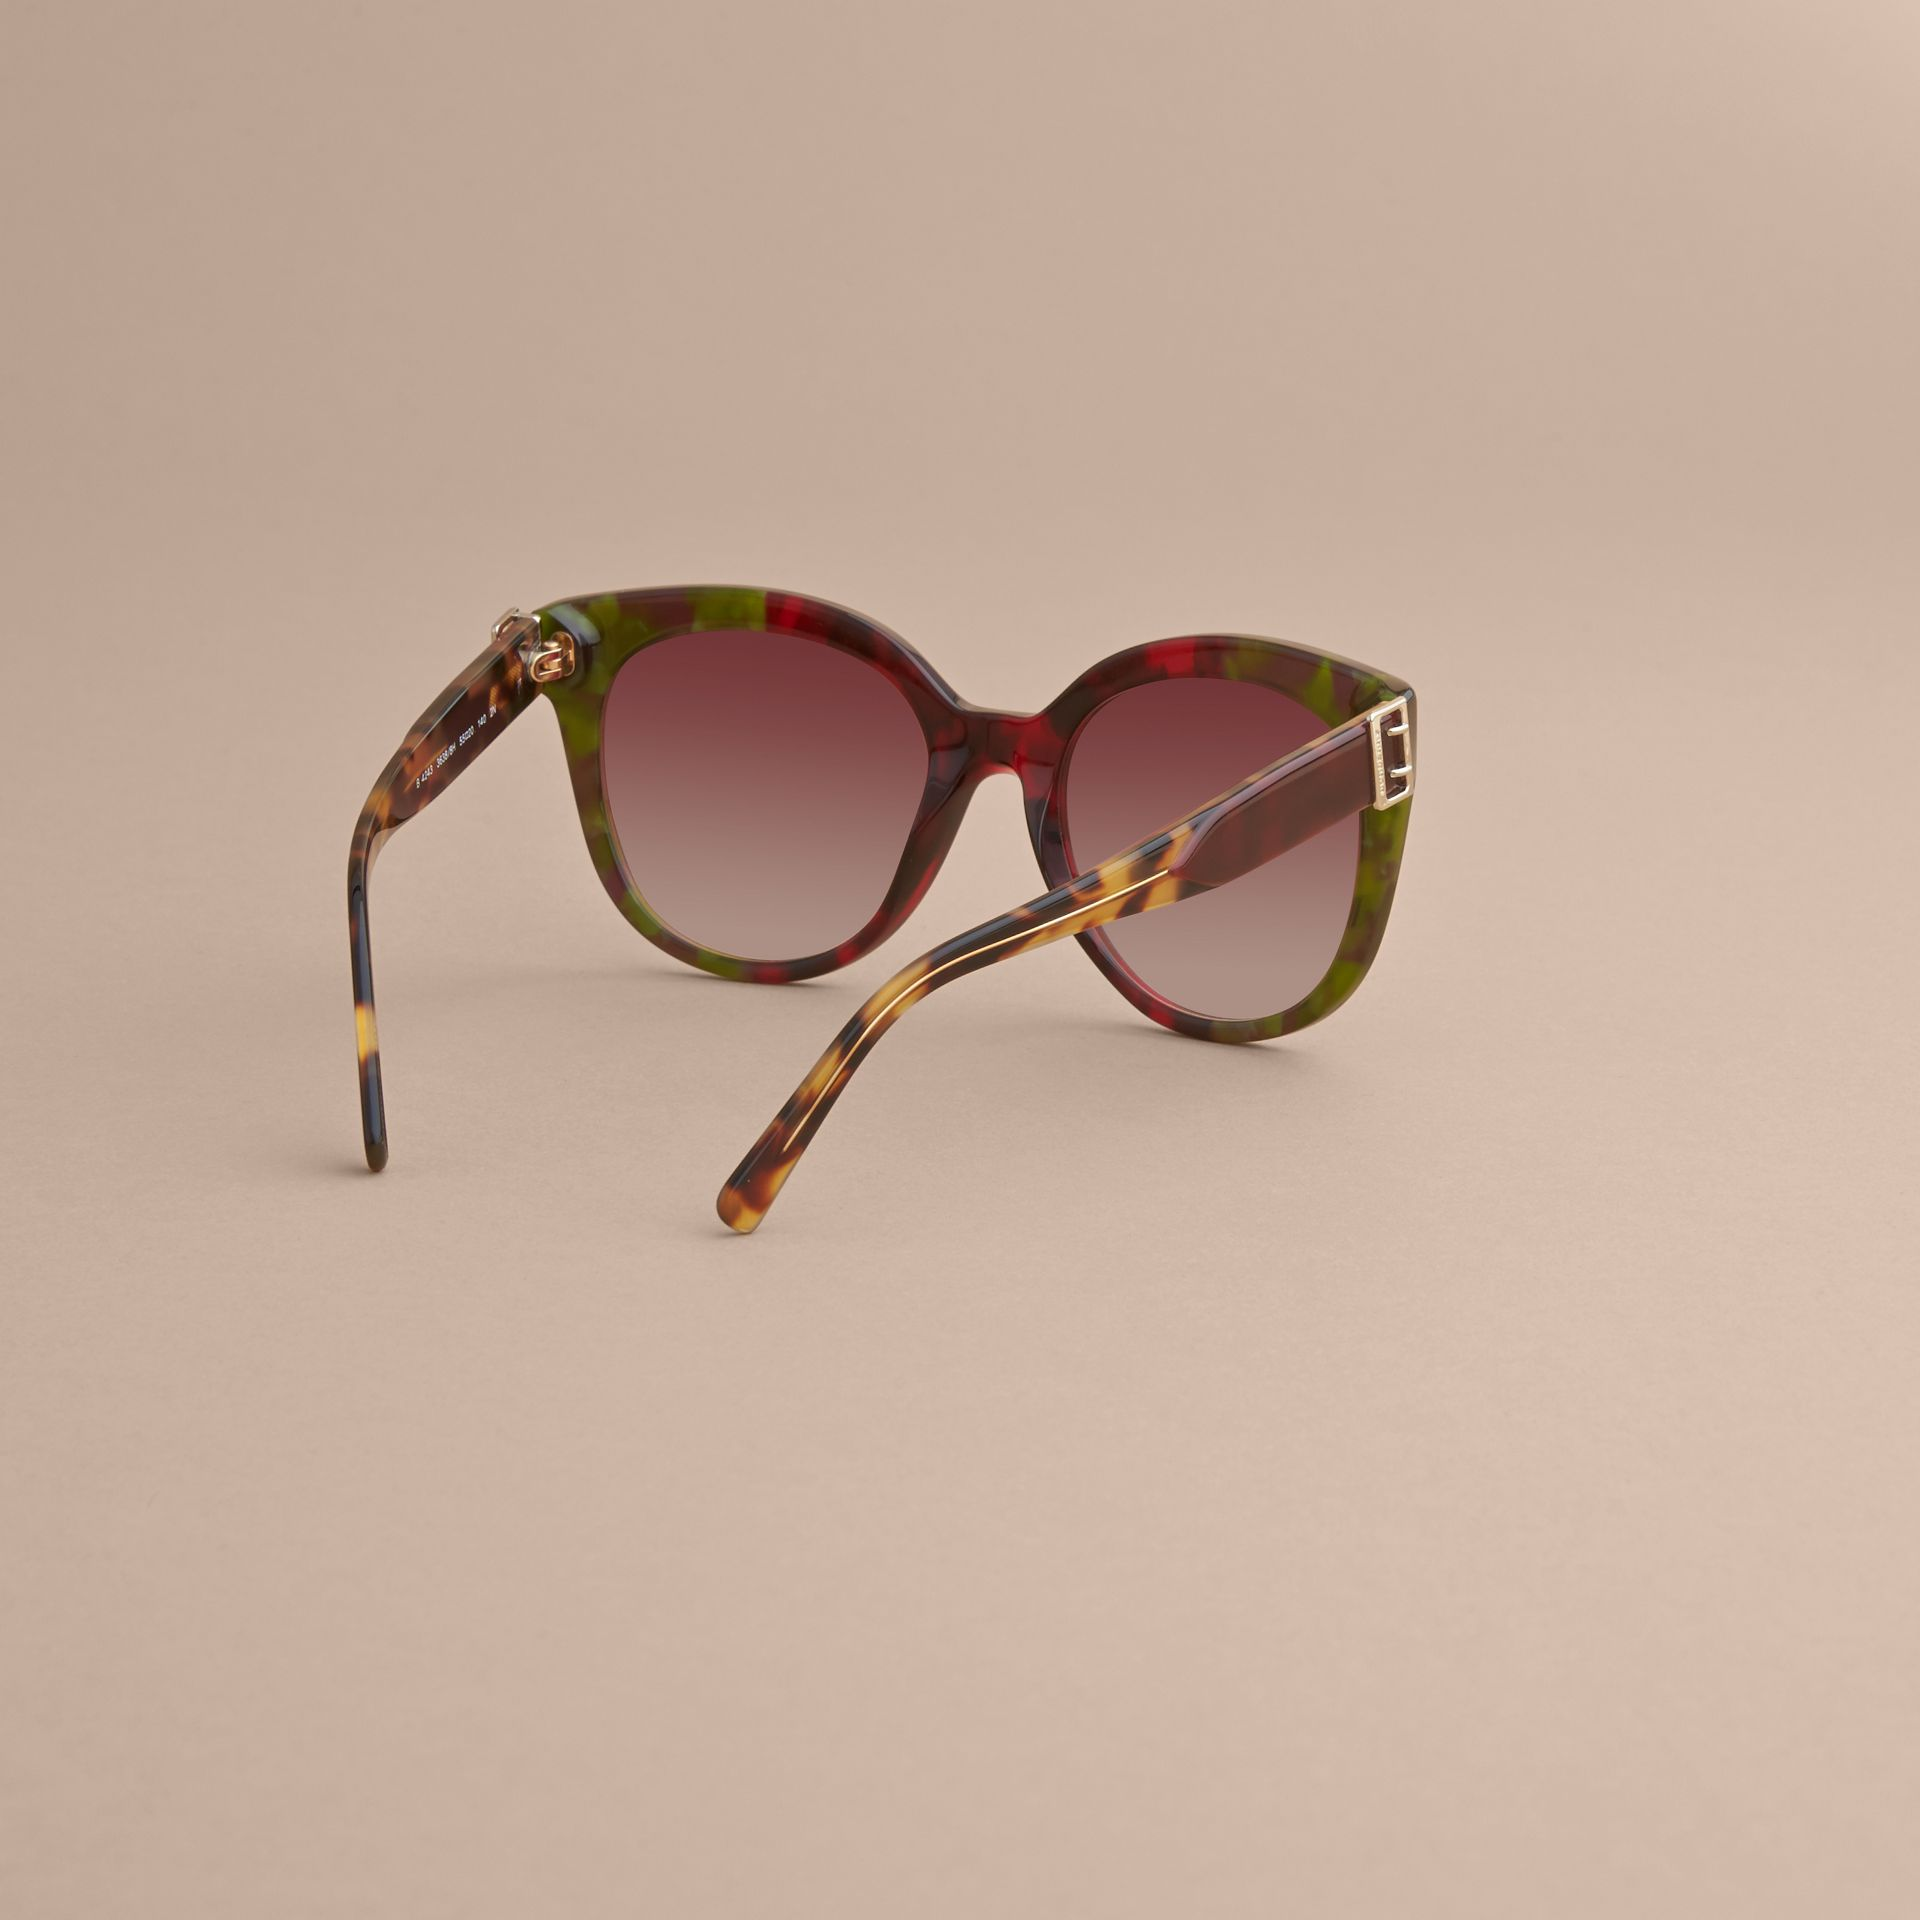 Buckle Detail Cat-eye Frame Sunglasses in Cardinal Red - Women | Burberry Australia - gallery image 4